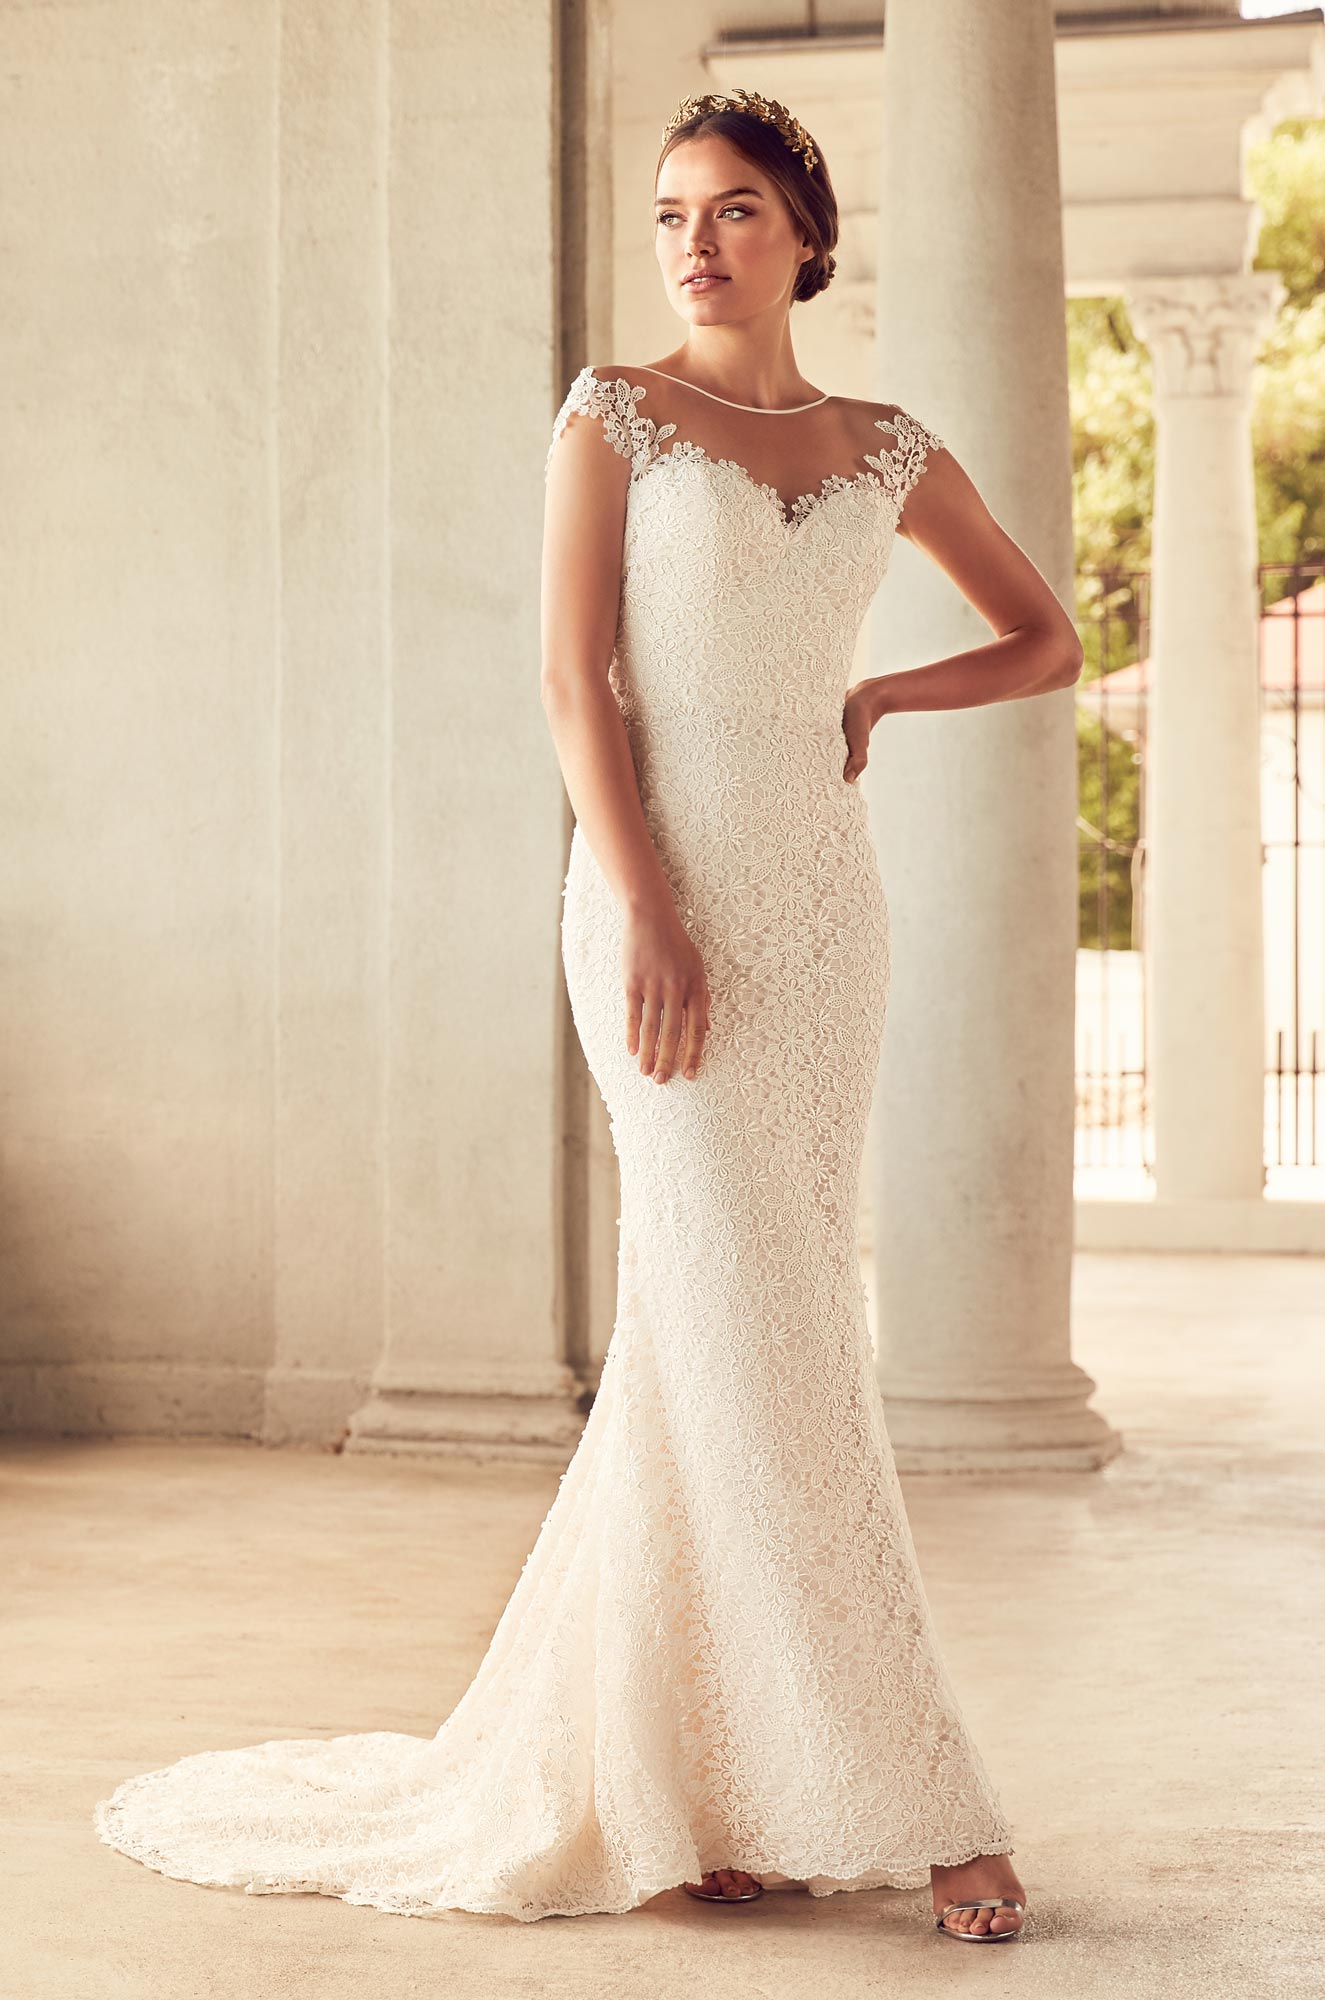 Fitted Lace Wedding Dress - Style #4786 | Paloma Blanca